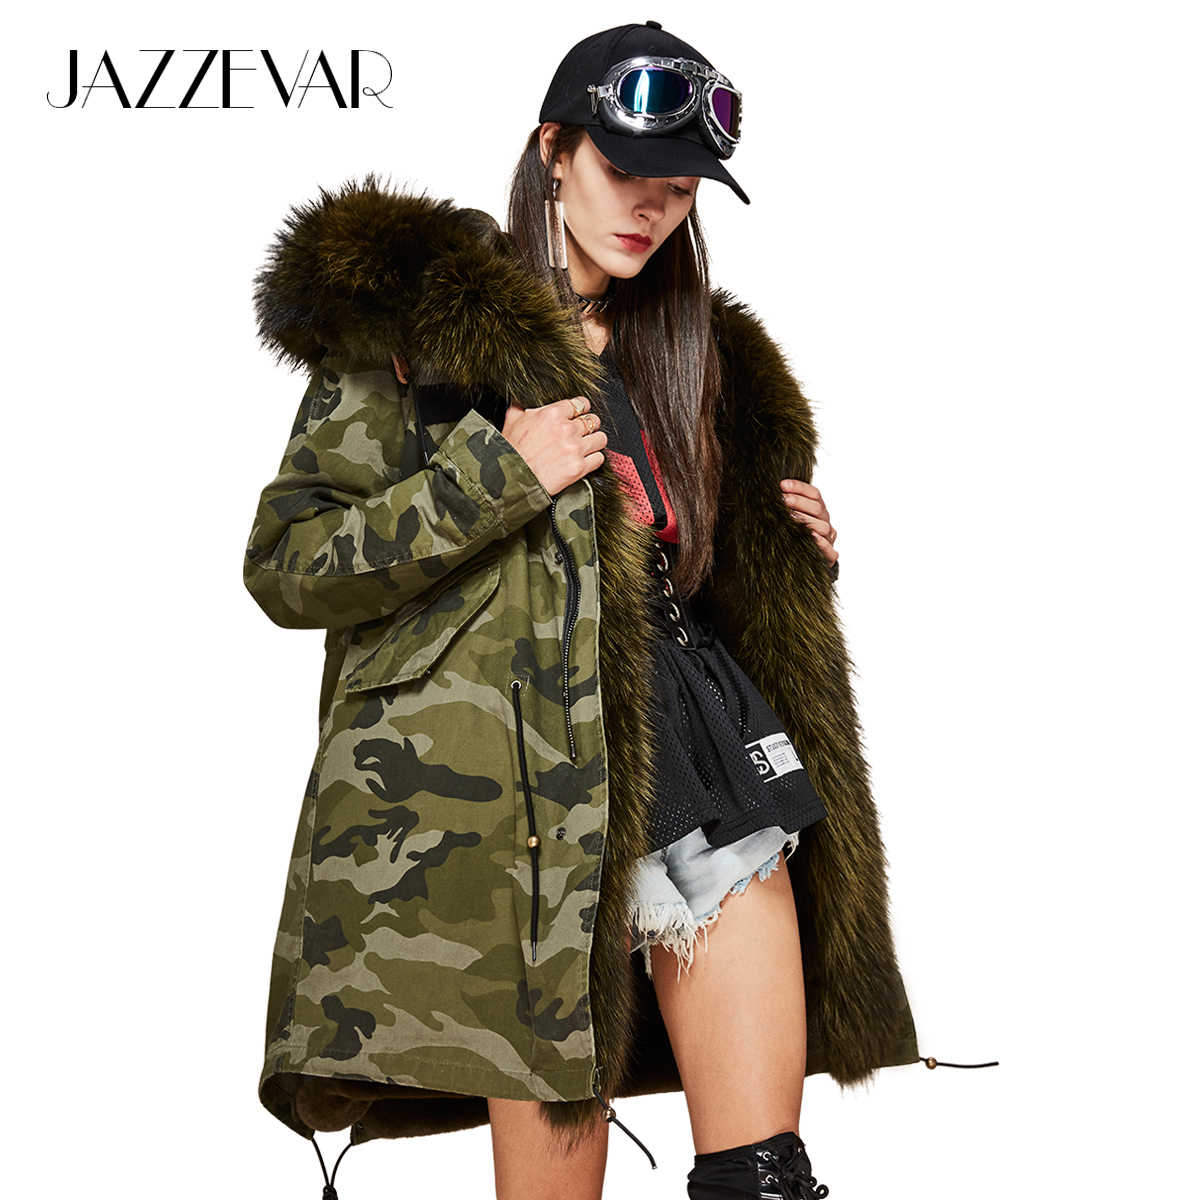 JAZZEVAR 2019 New Women's Luxurious Large raccon fur Collar hooded Coat camouflage Military Parkas warm Outwear Winter Jacket